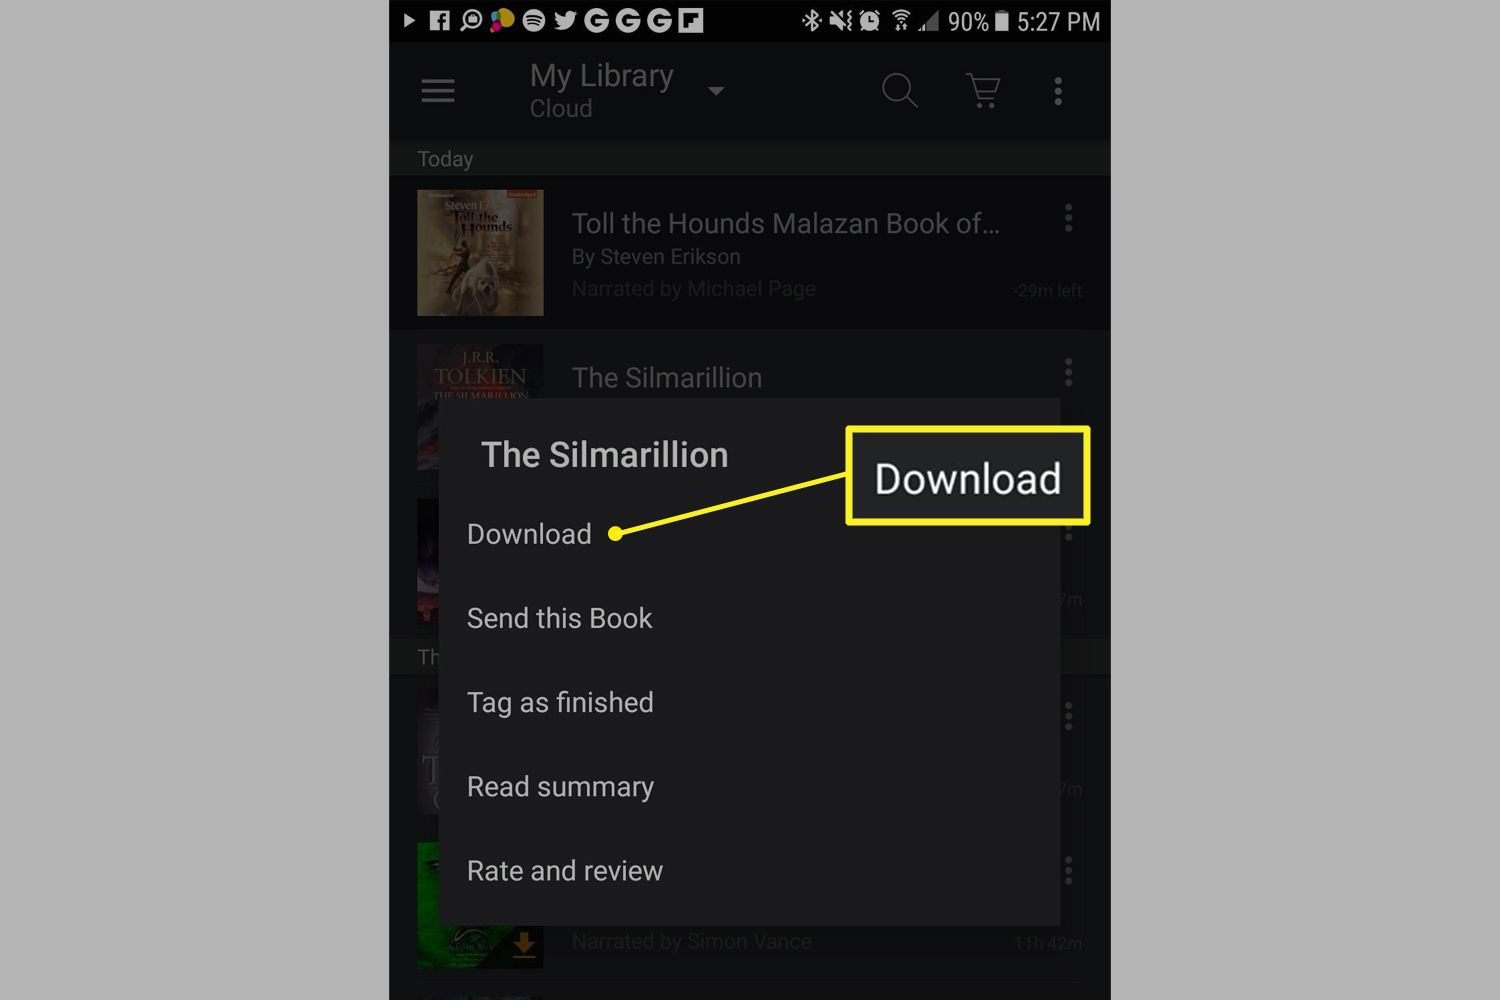 A book in the library with Download highlighted